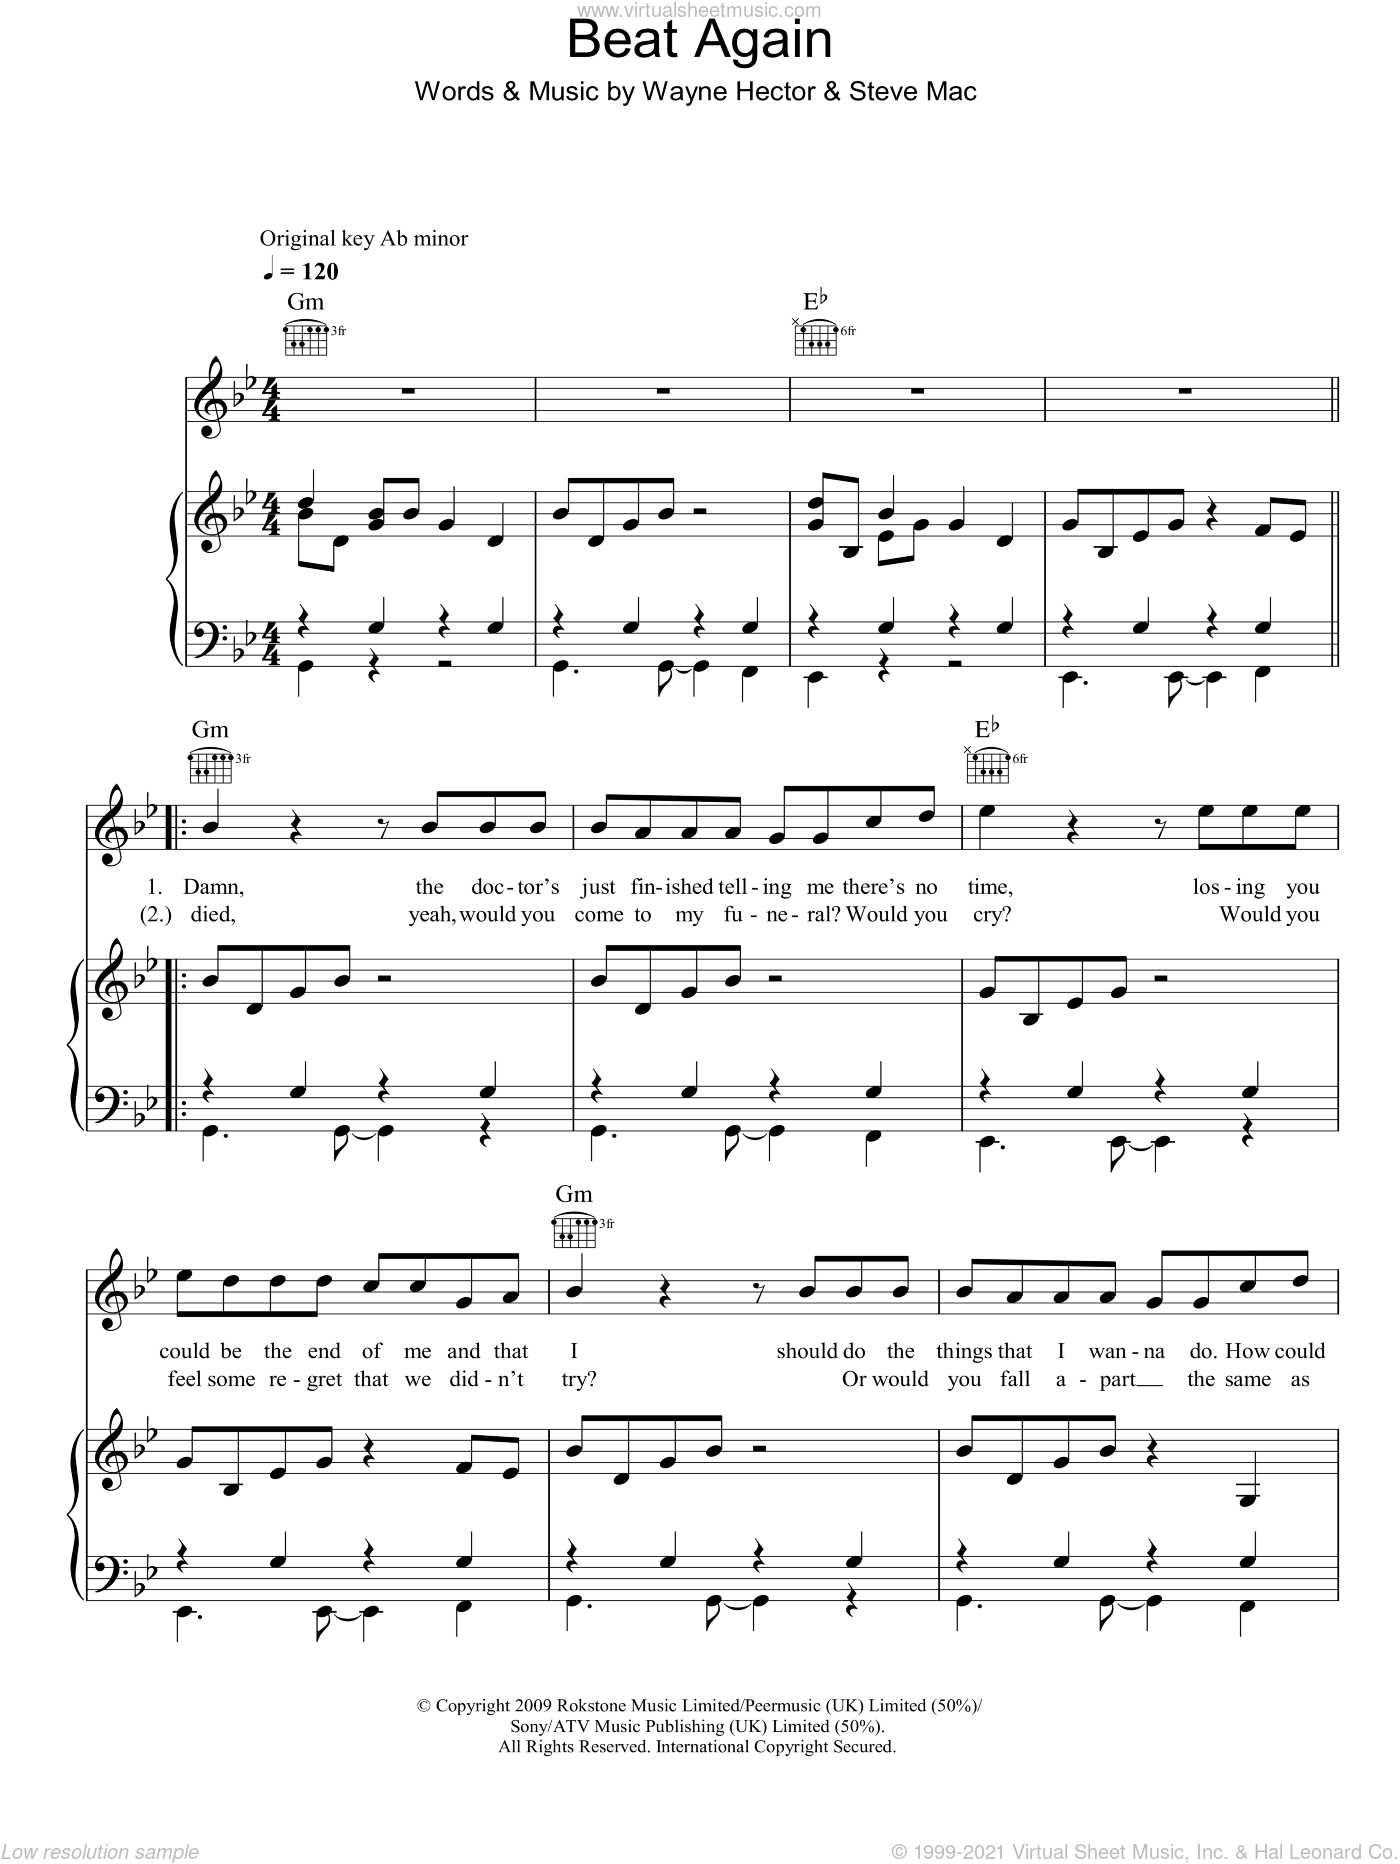 Beat Again sheet music for voice, piano or guitar by Wayne Hector